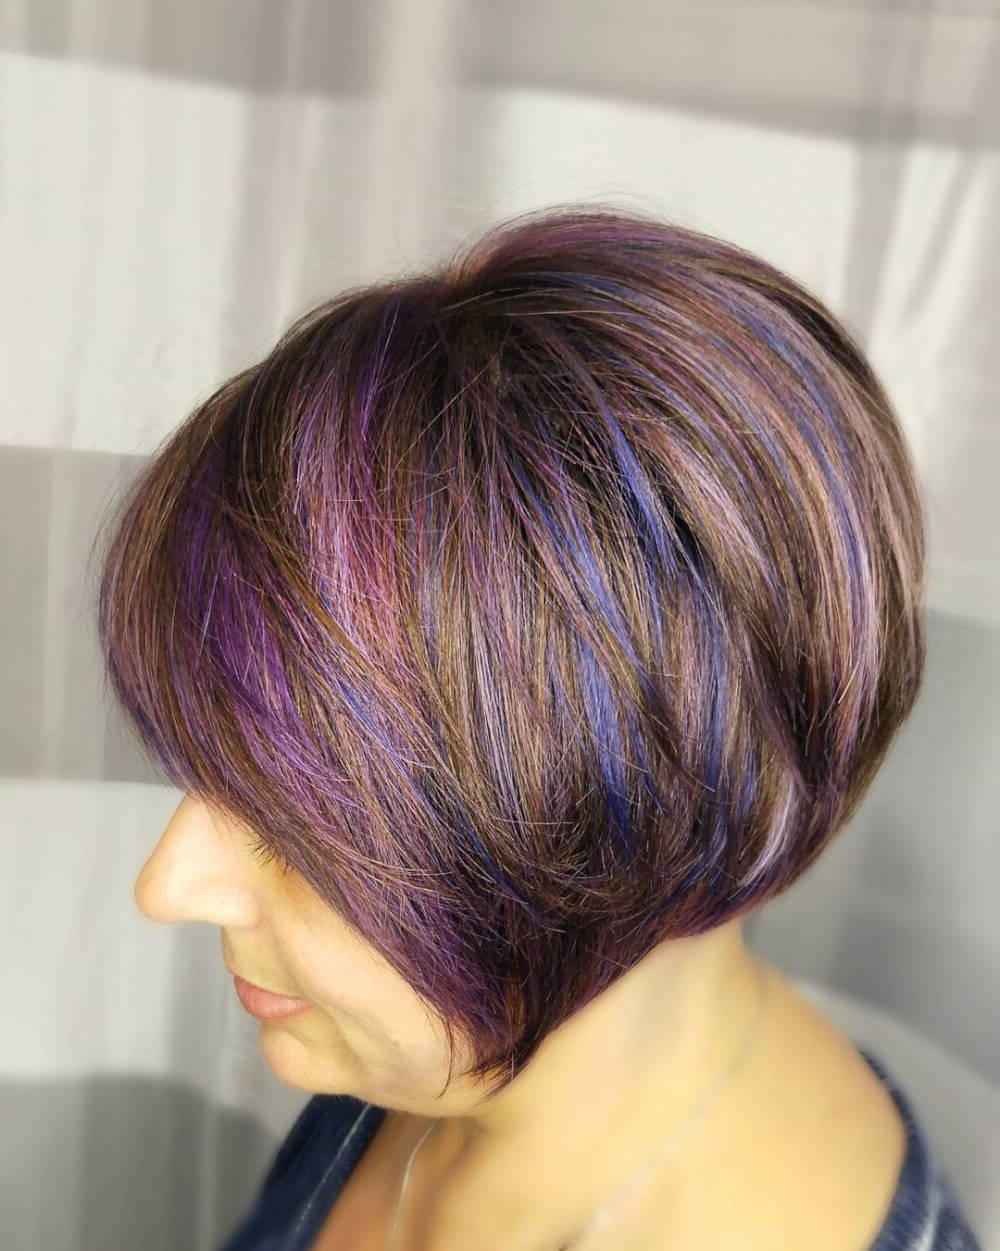 39 Classiest Short Hairstyles For Women Over 50 Of 2018 Regarding Short Hair Style For Women Over  (View 7 of 25)